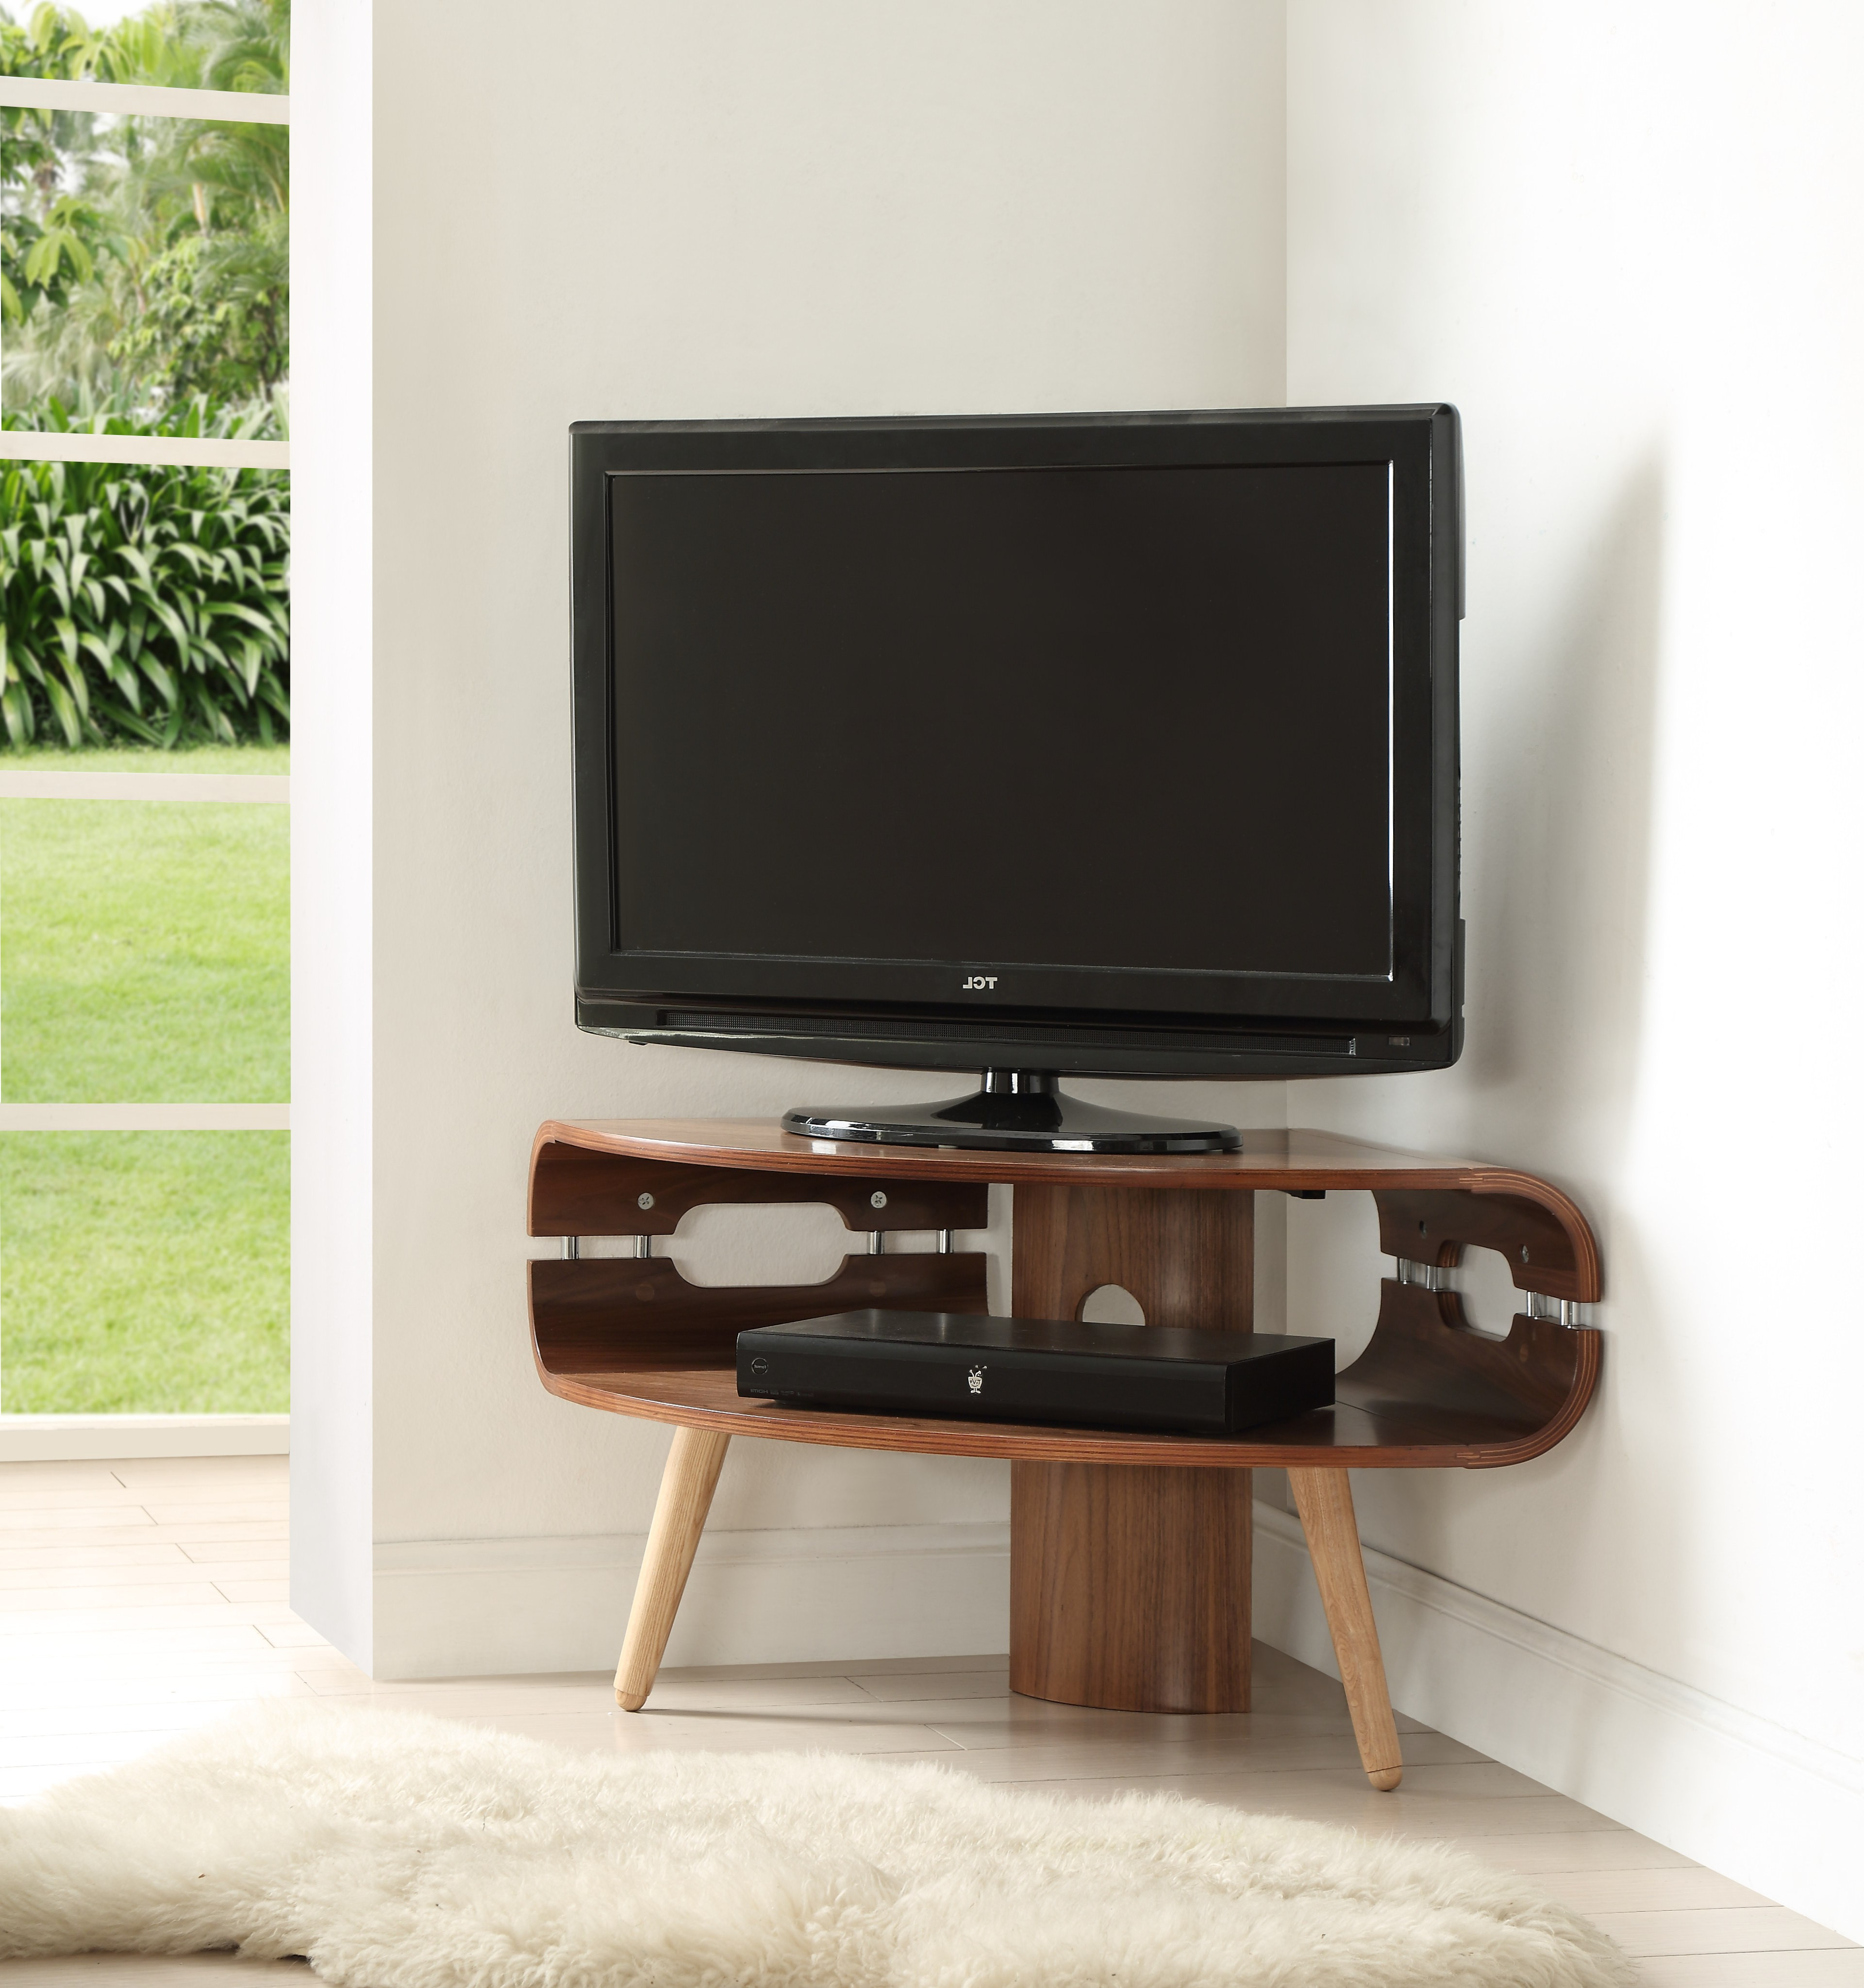 Jf701 Corner Tv Stand – Cooks Within Most Up To Date Tv Stands For Corners (Gallery 1 of 20)